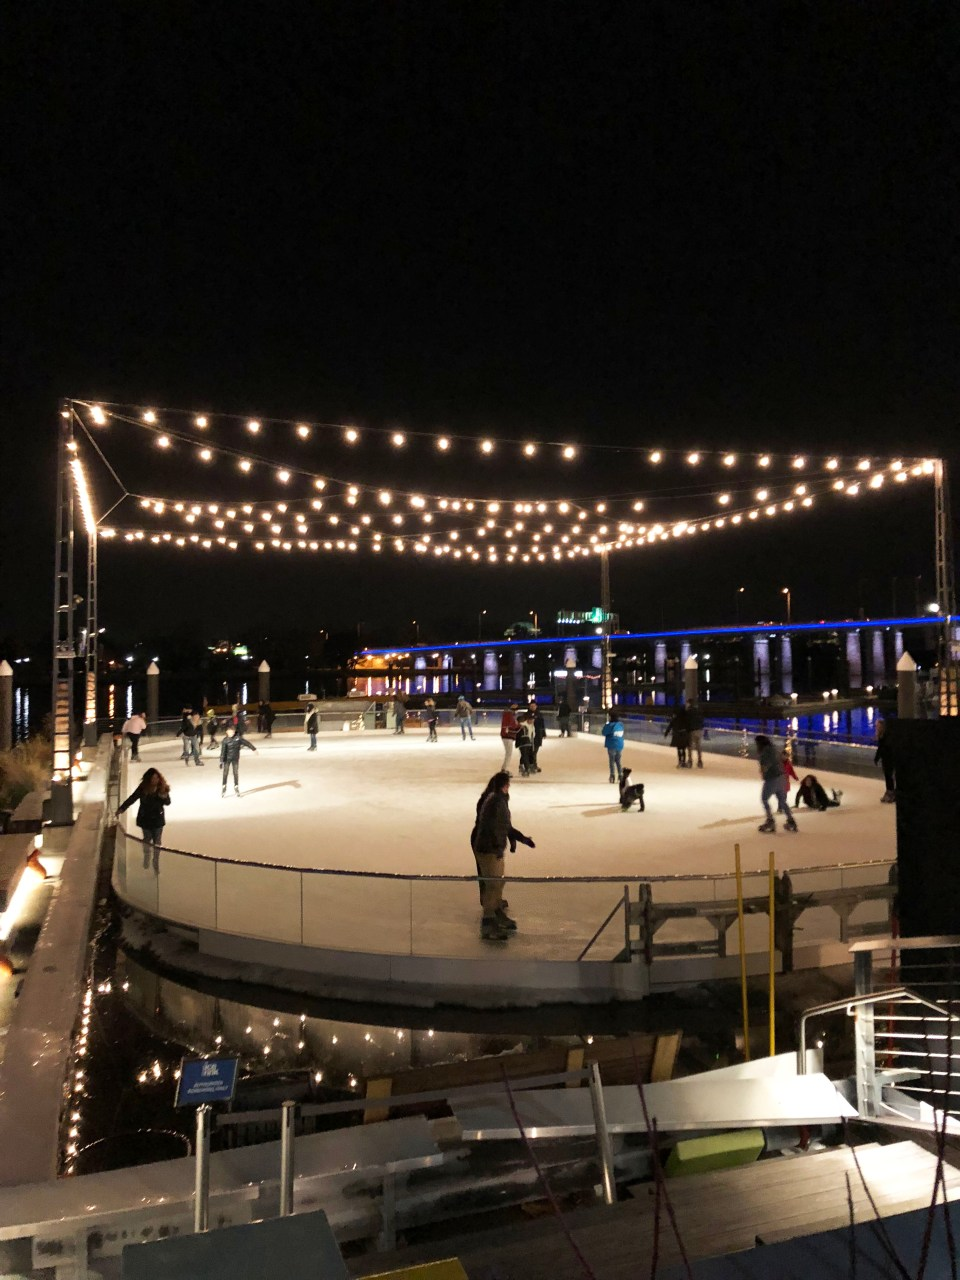 Washington DC Wharf - Ice skating